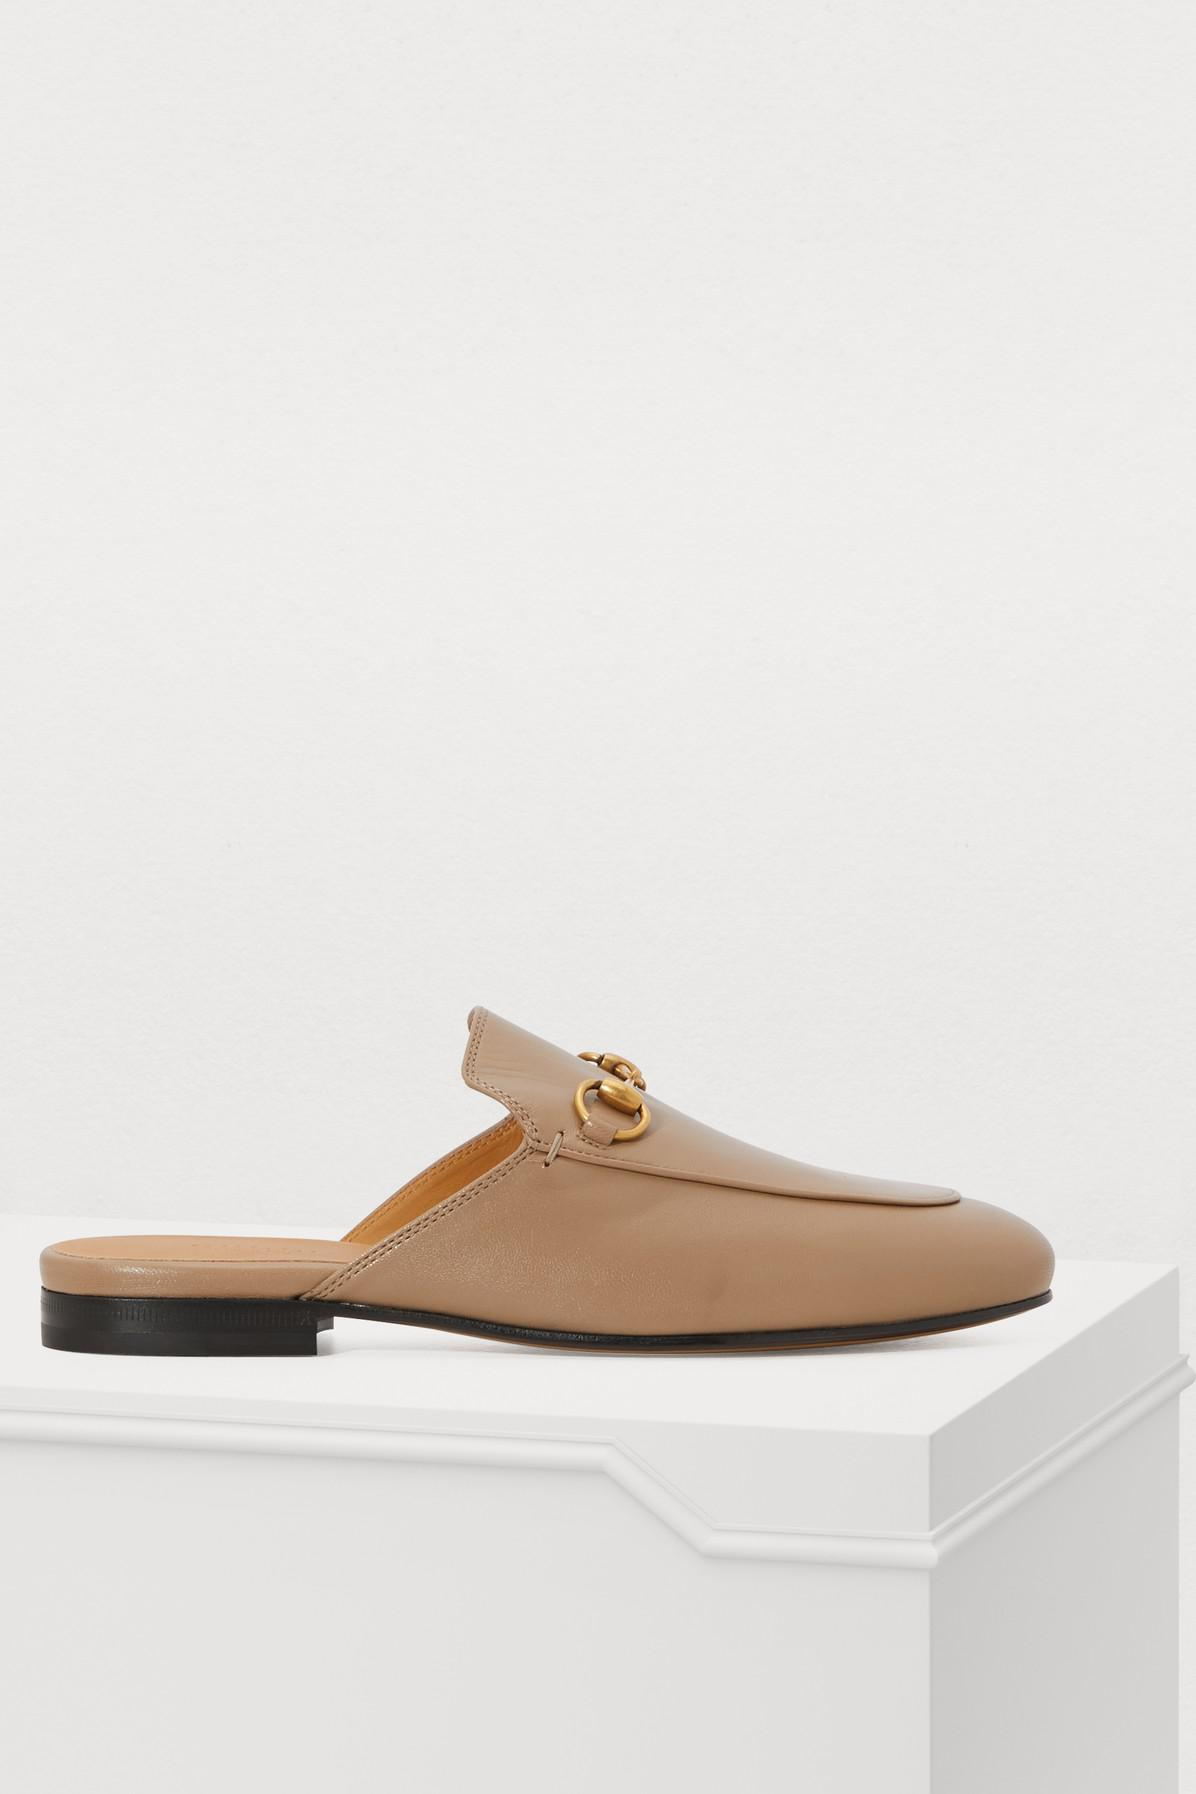 fe03ad8ffc8f Lyst - Gucci Taupe Princetown Slippers in Brown - Save 24%